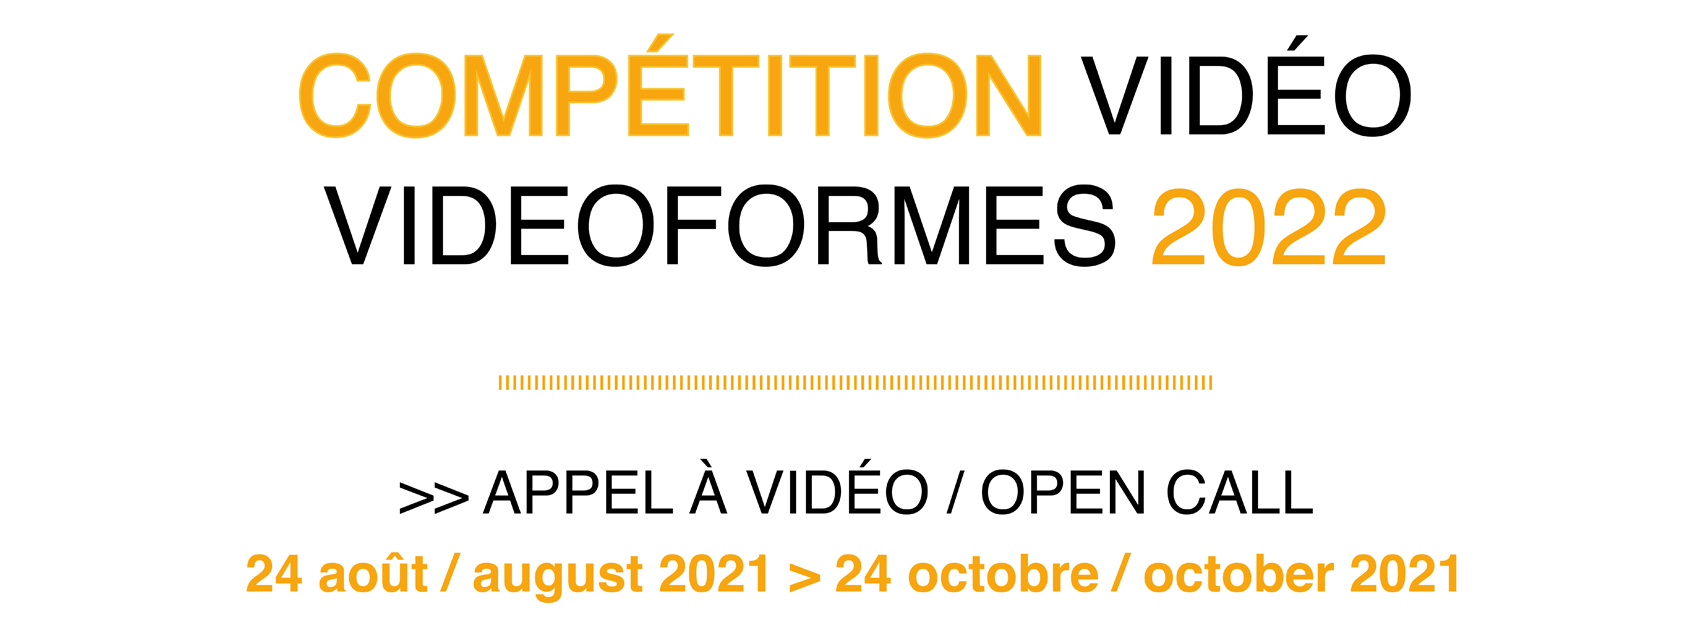 2022 Video Competition Registration